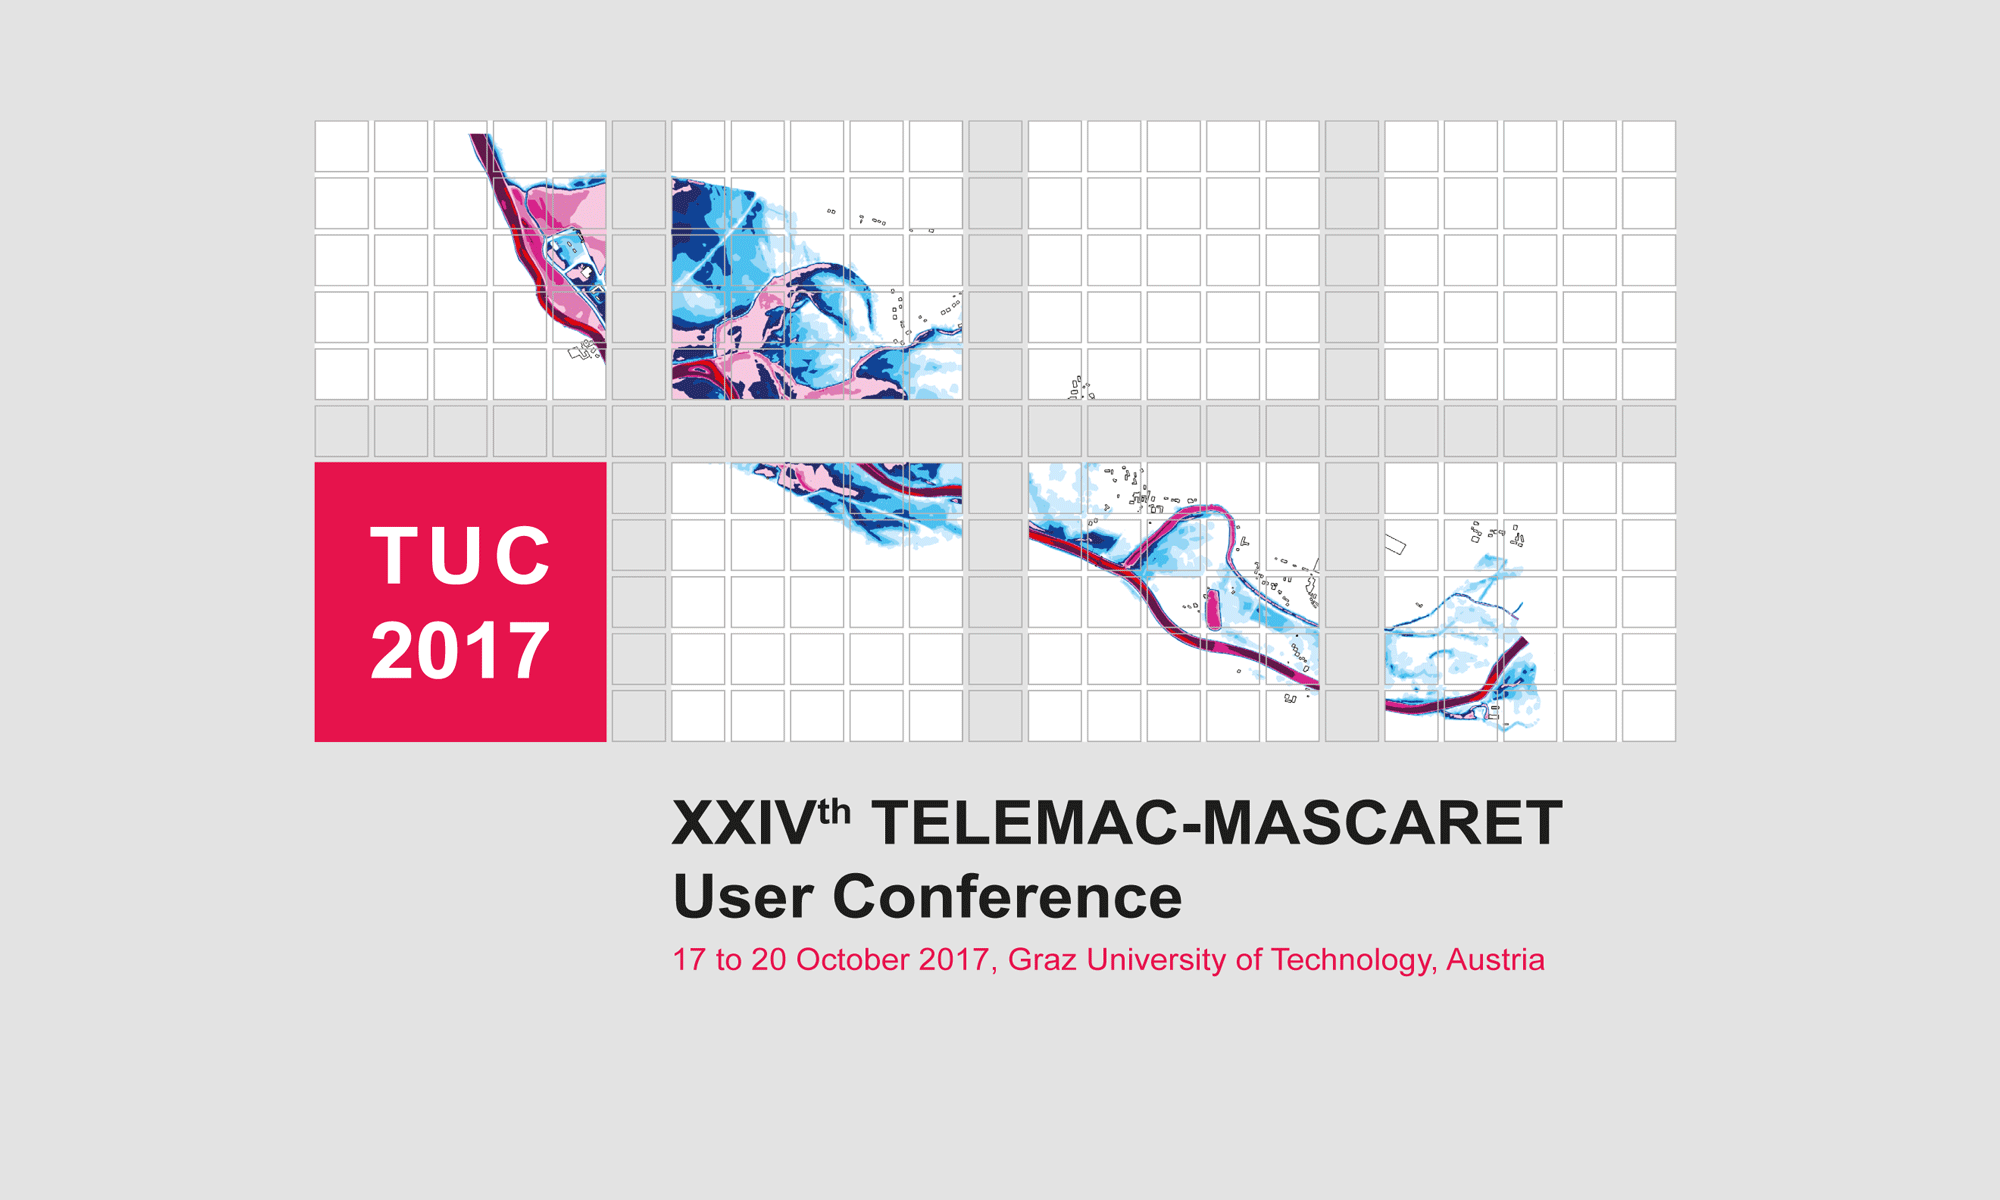 XXIV TELEMAC-MASCARET User Conference 2017